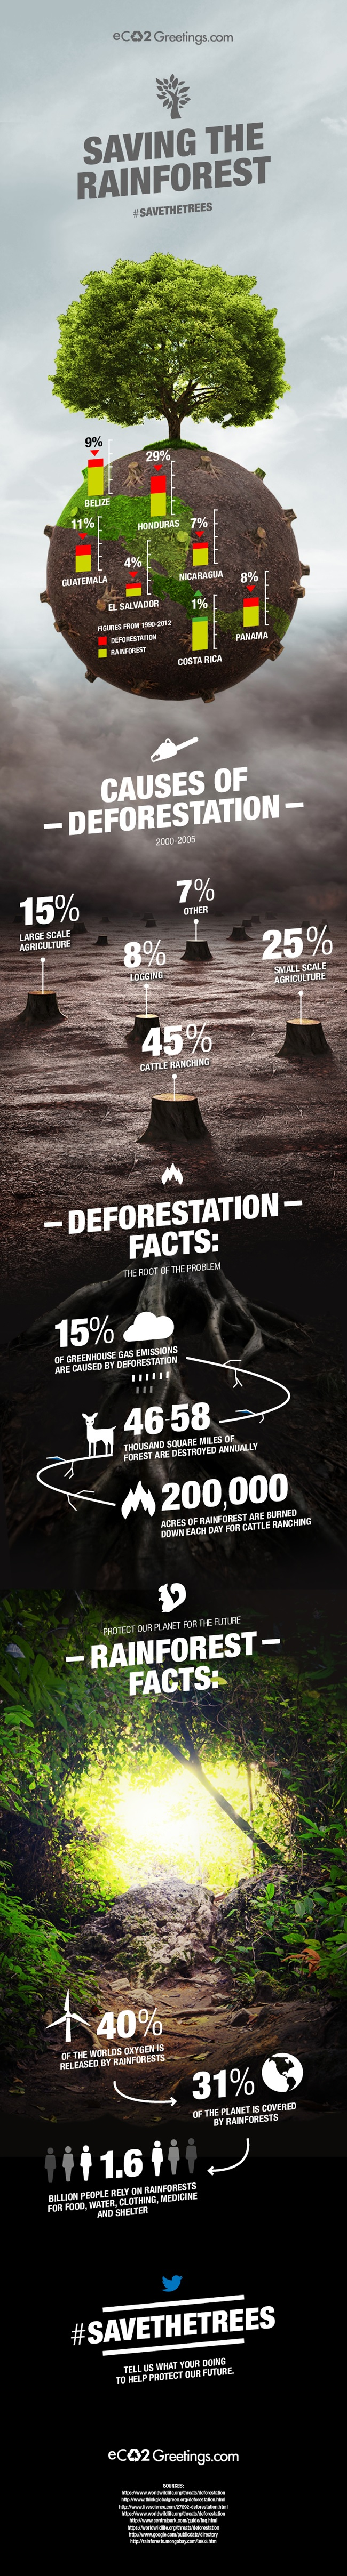 eco2-infographic-deforestation